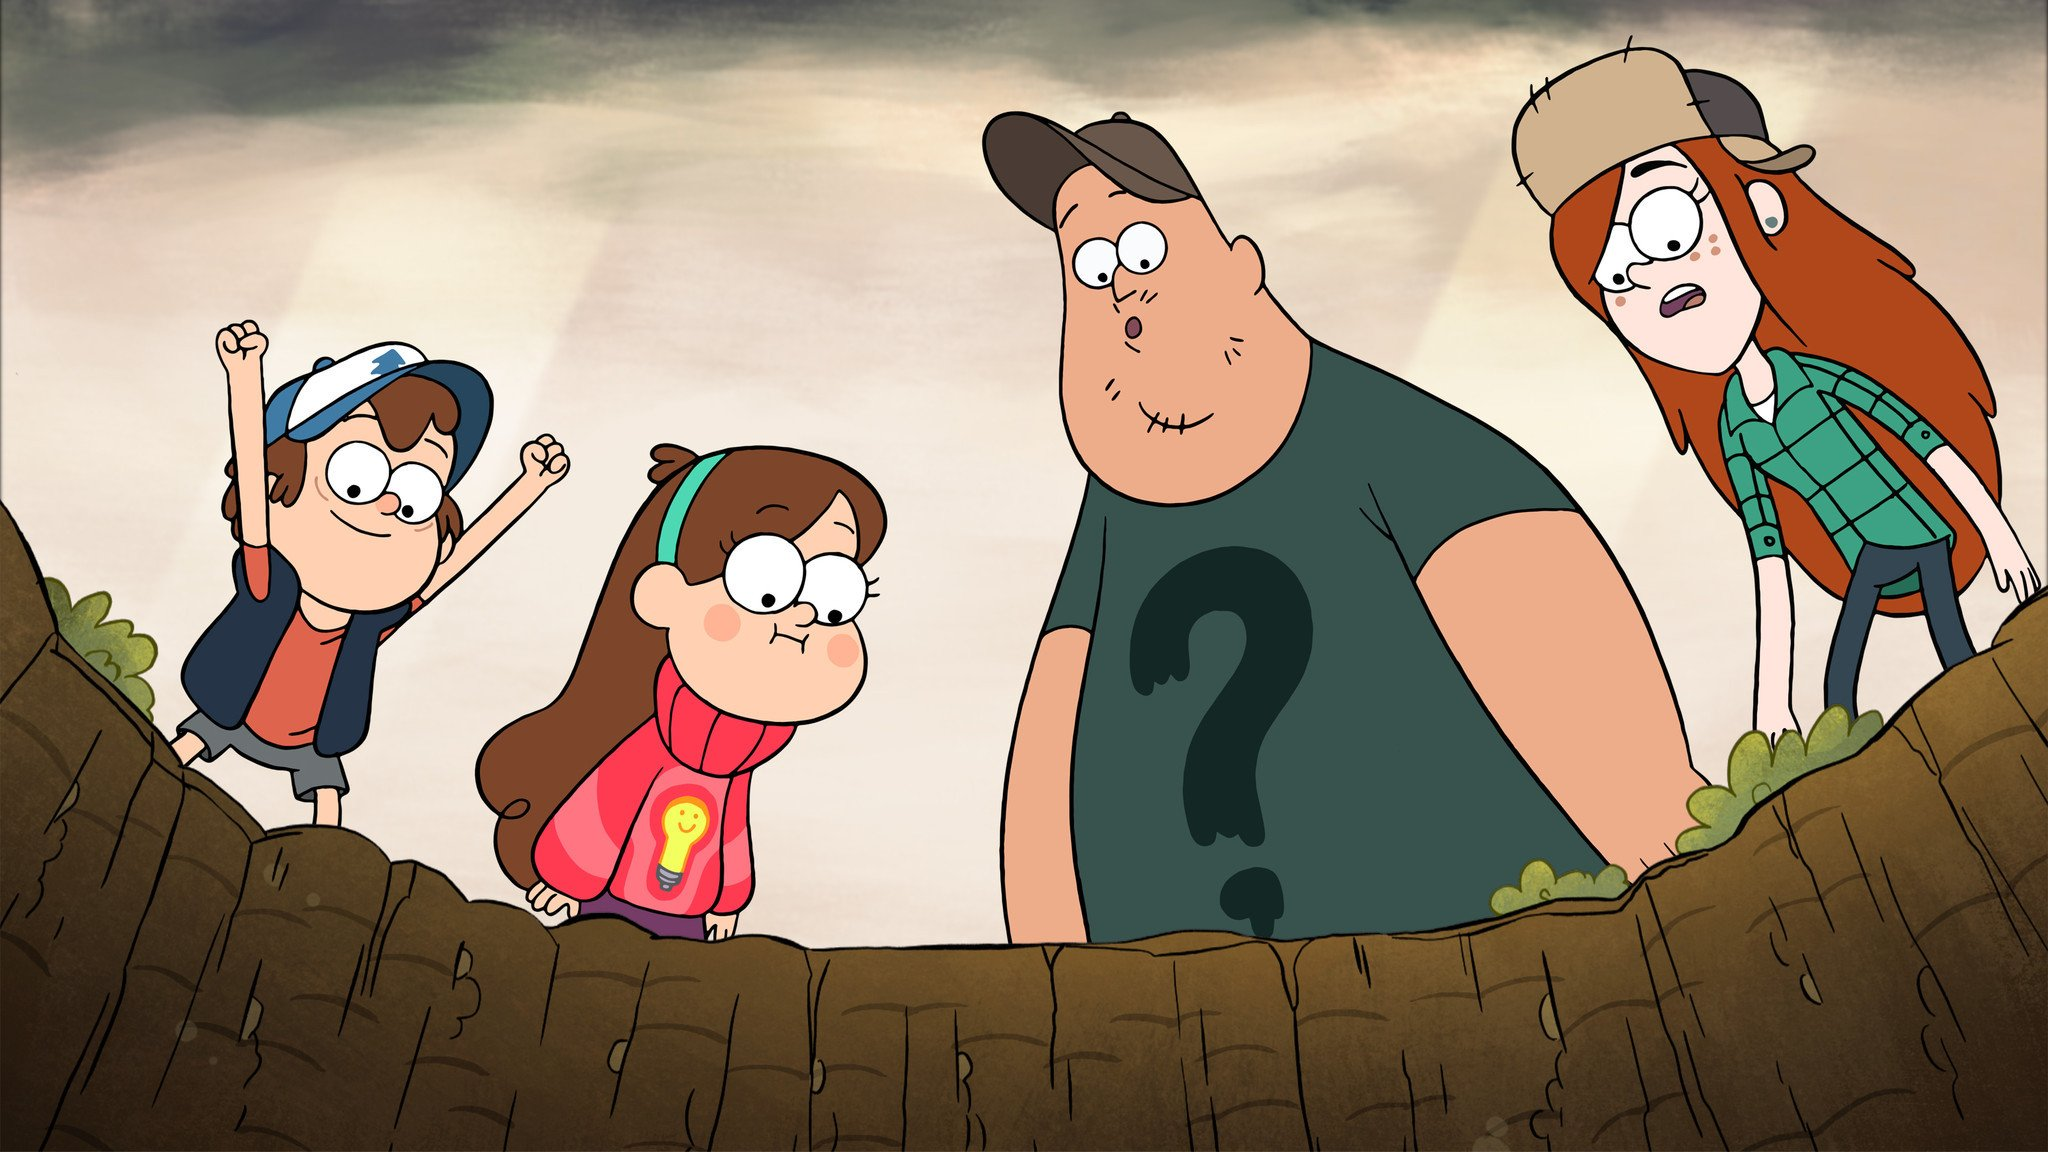 Moving Gravity Falls Wallpapers Gravity Falls Disney Family Animated Cartoon Series Comedy